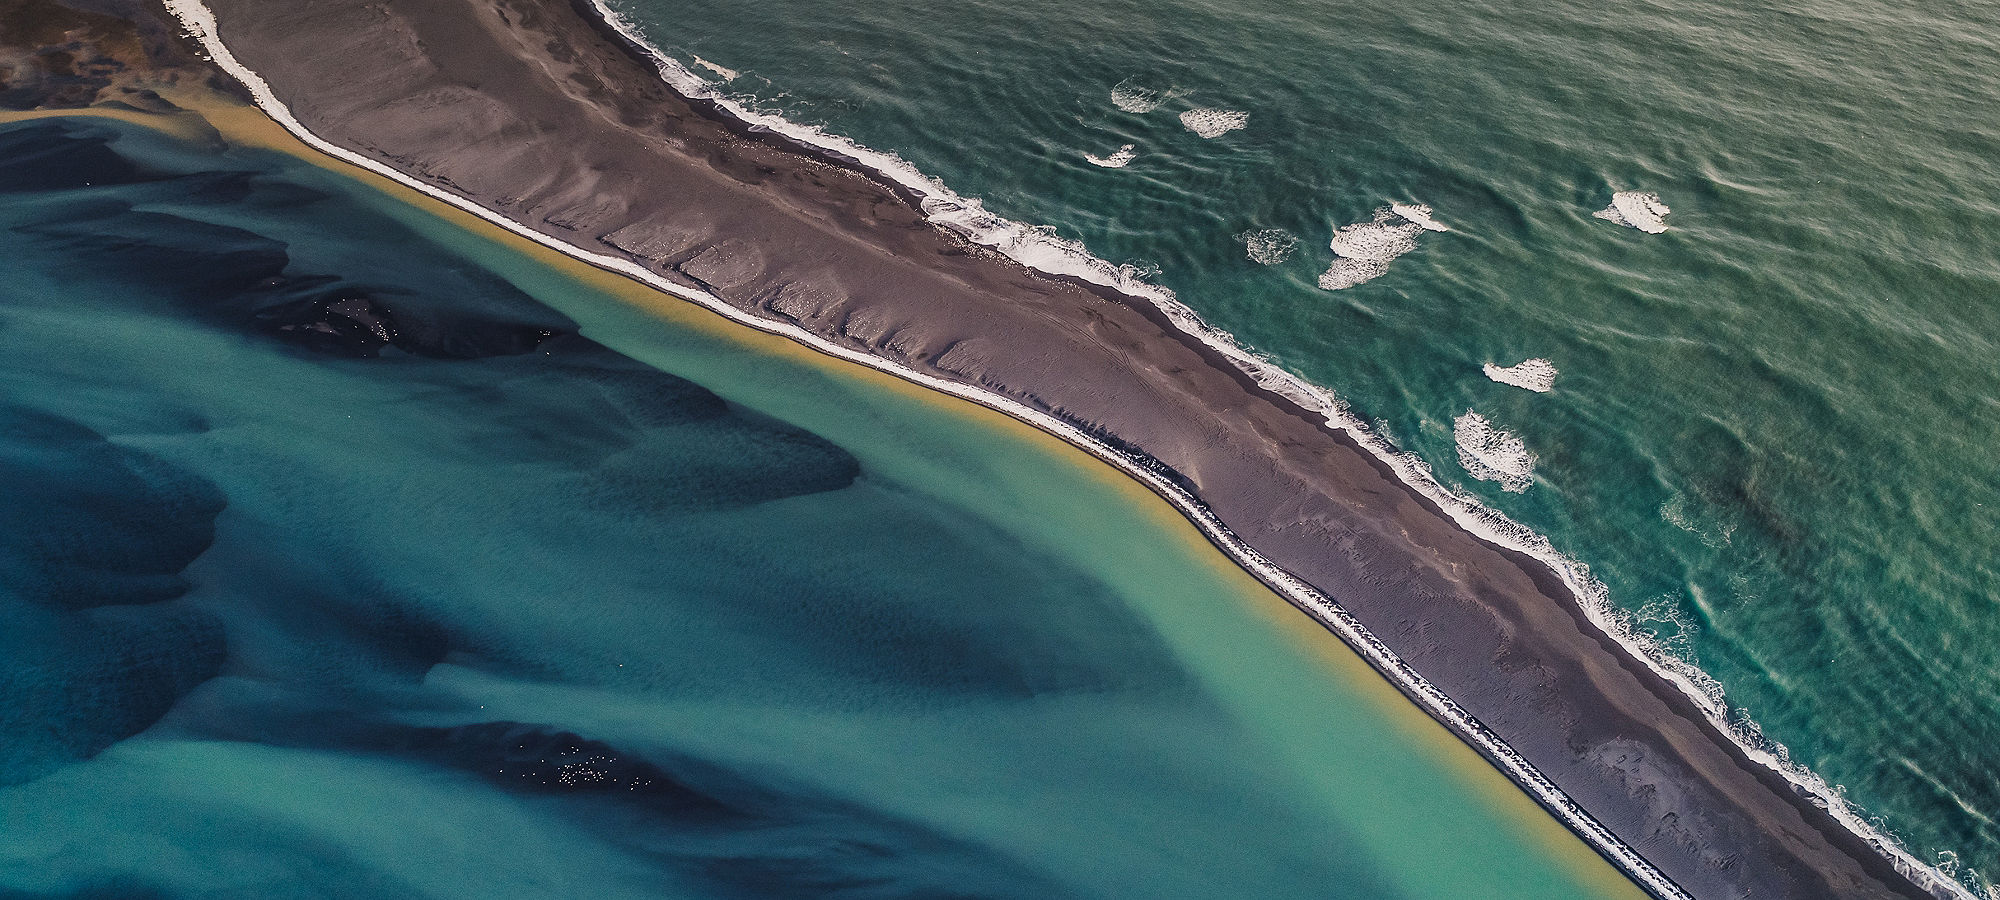 aerial-view-of-thin-barrier-island-with-water-on-each-side